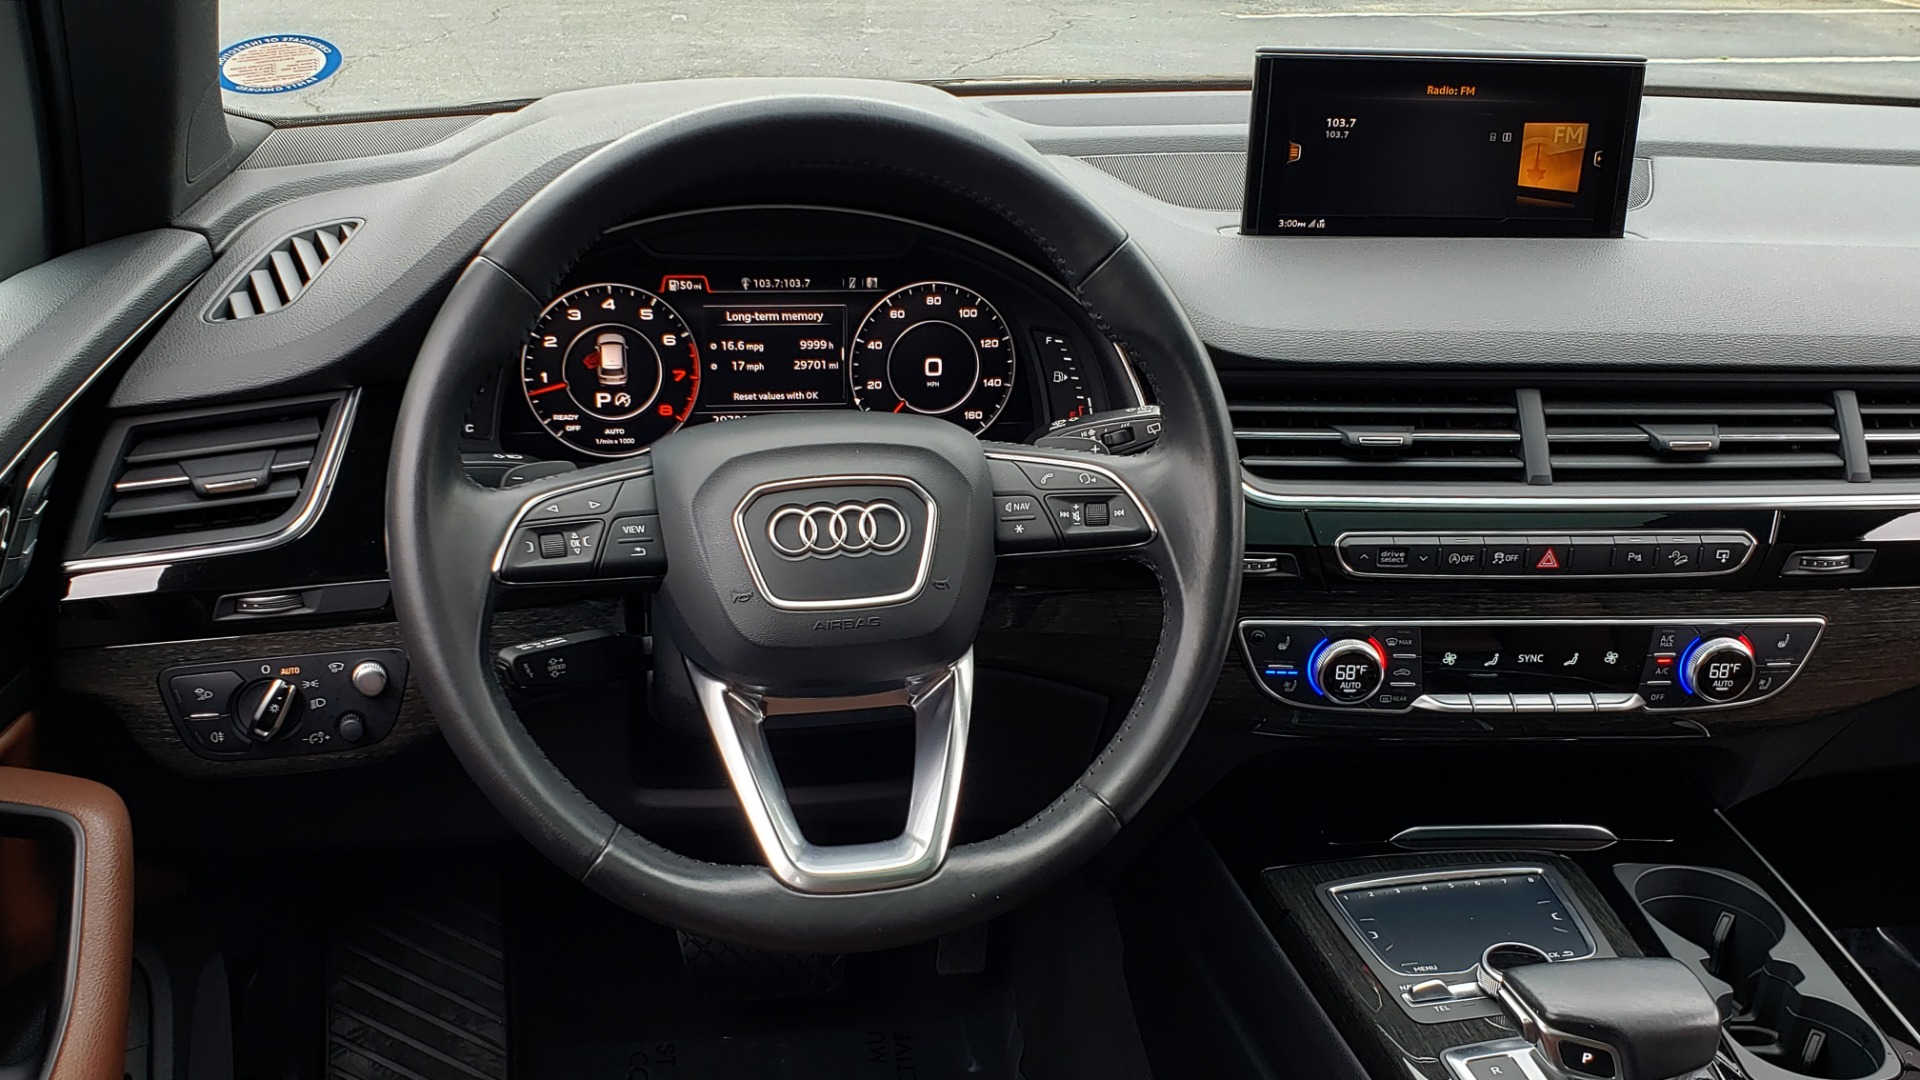 Used 2017 Audi Q7 PRESTIGE 3.0T / AWD / NAV / PANO-ROOF / HTD STS / BOSE / VISION for sale Sold at Formula Imports in Charlotte NC 28227 45